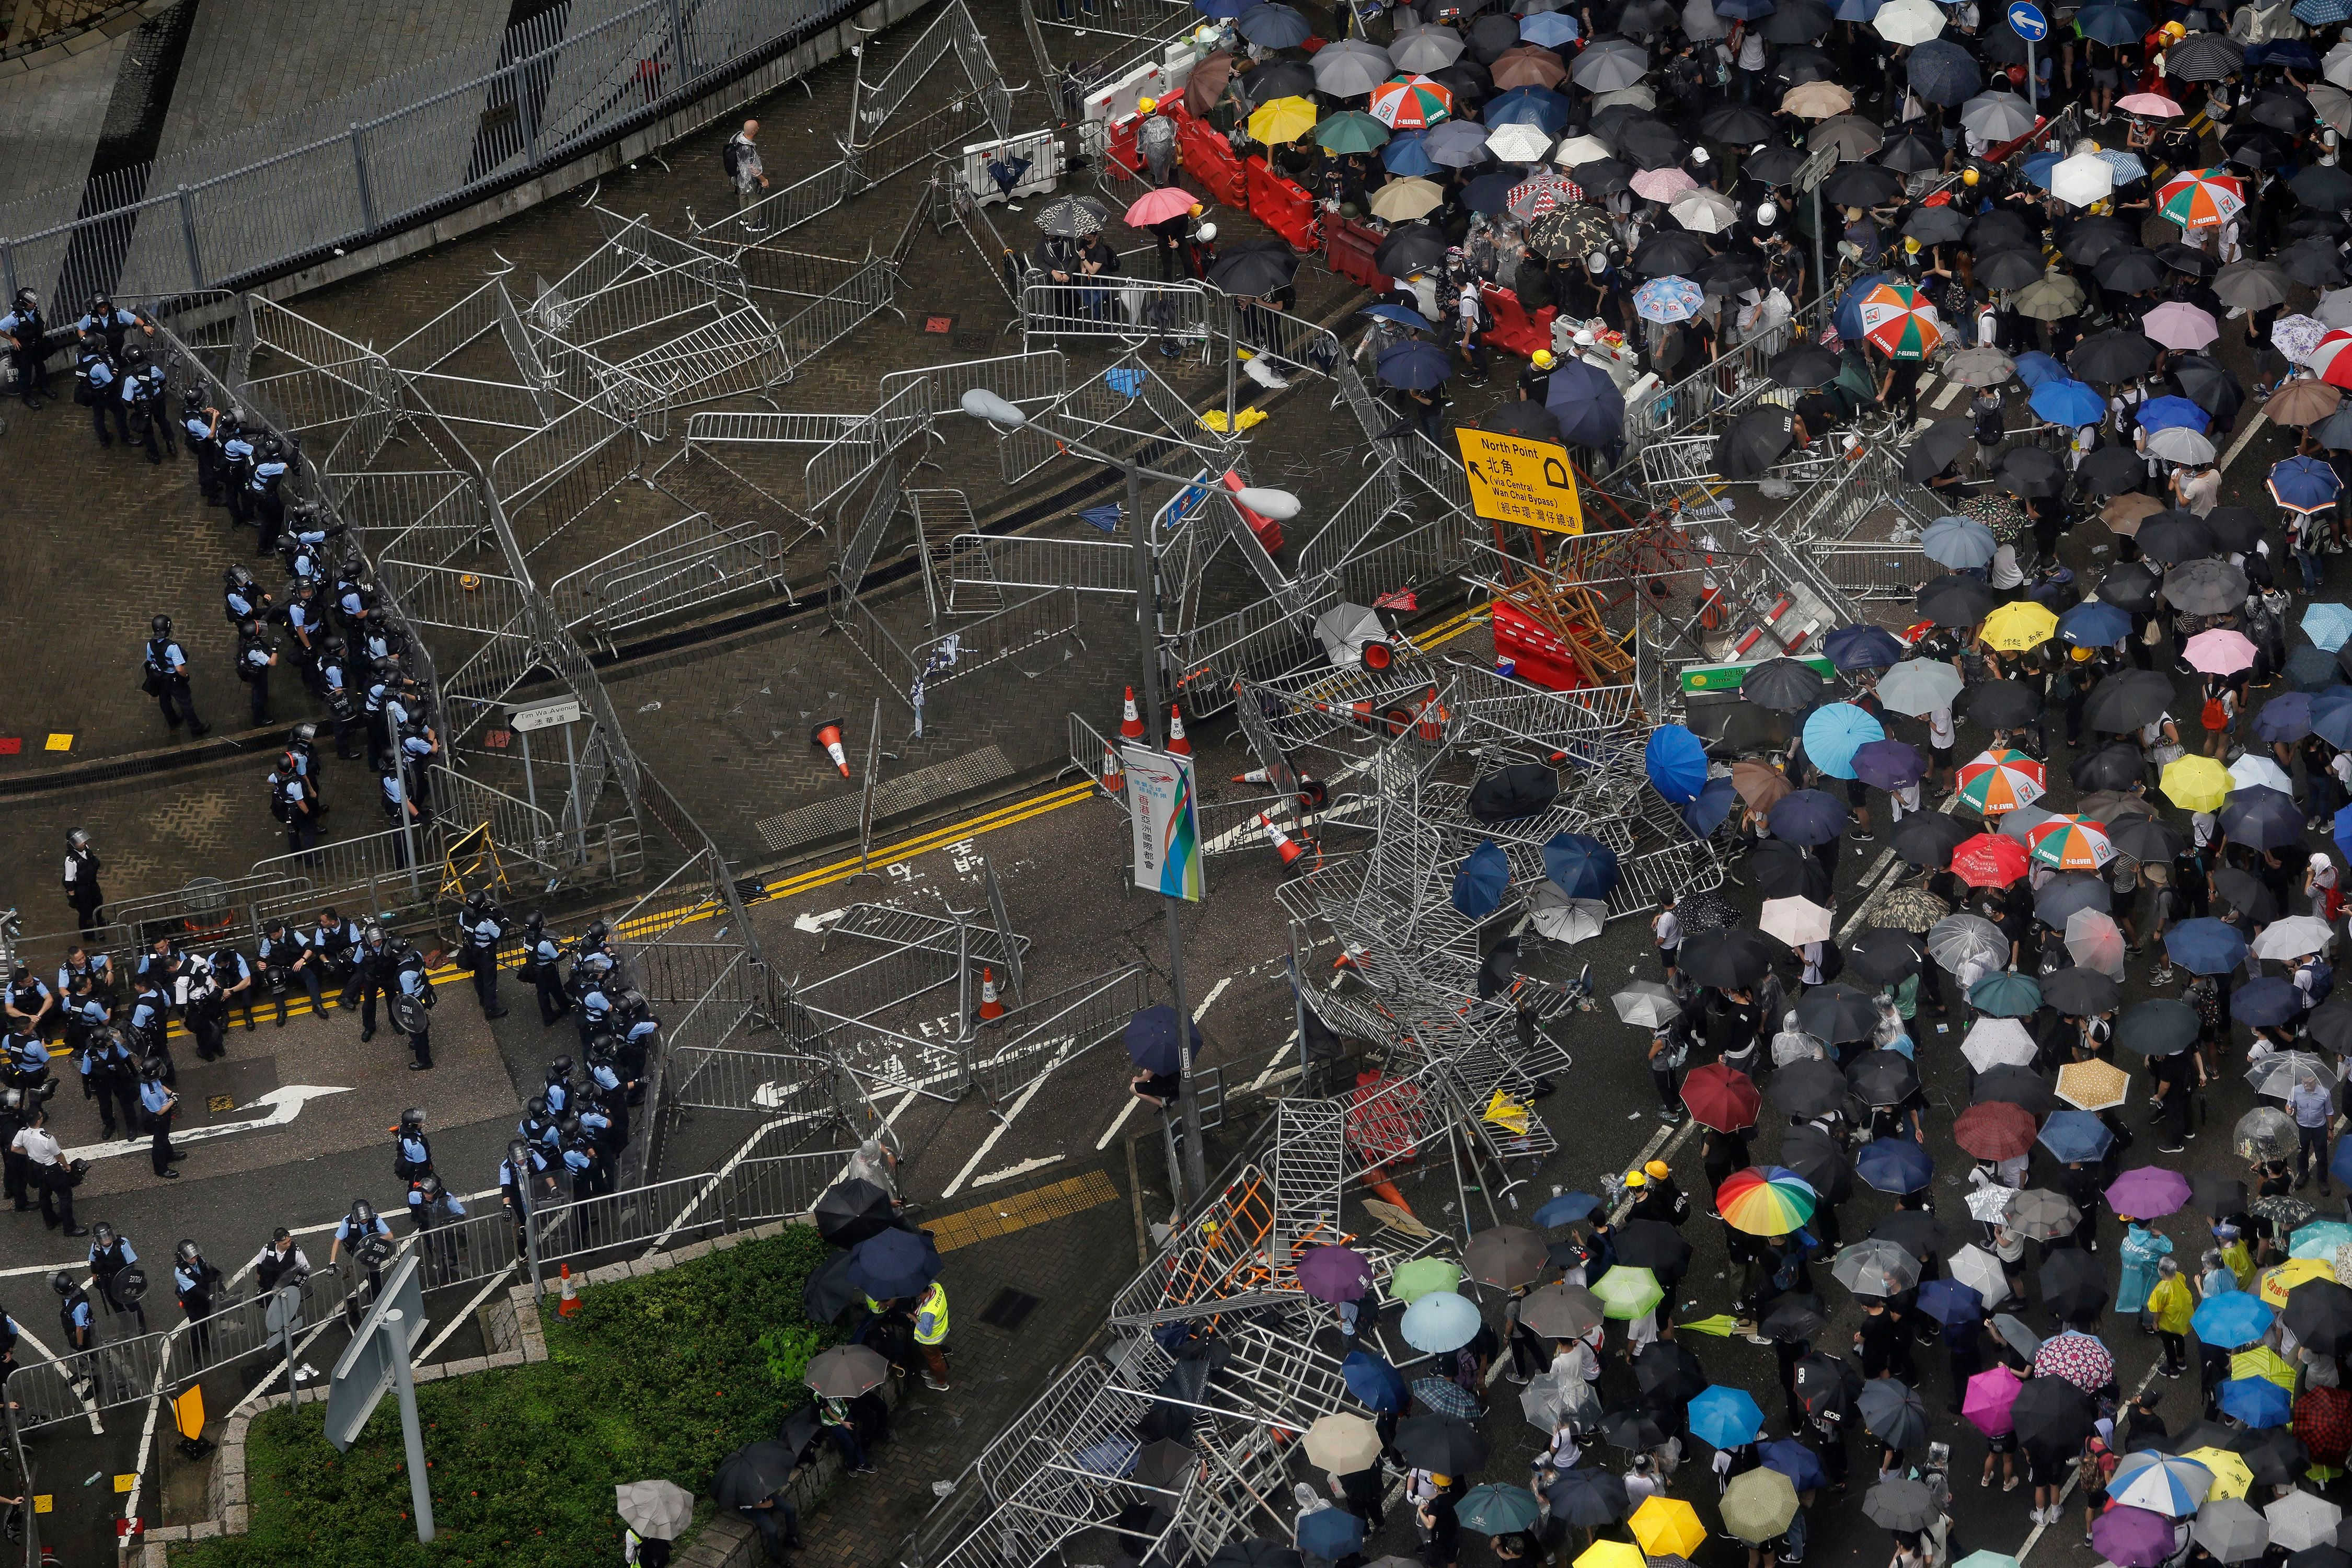 Protesters braved the rain and built barricades, facing off against police.